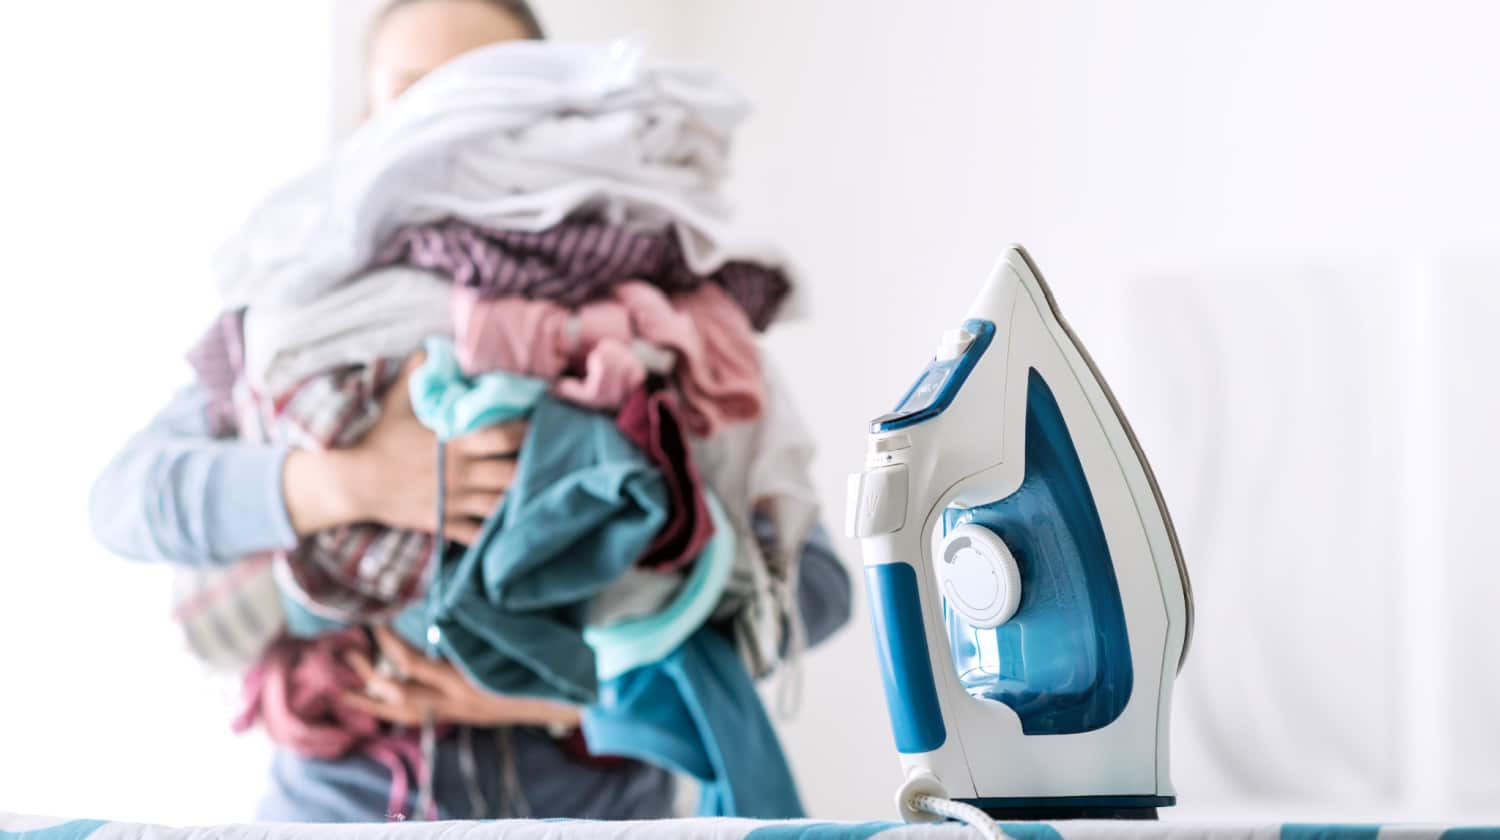 Teenager carrying pile of clothes to ironing board to demonstrate chores that teens can do